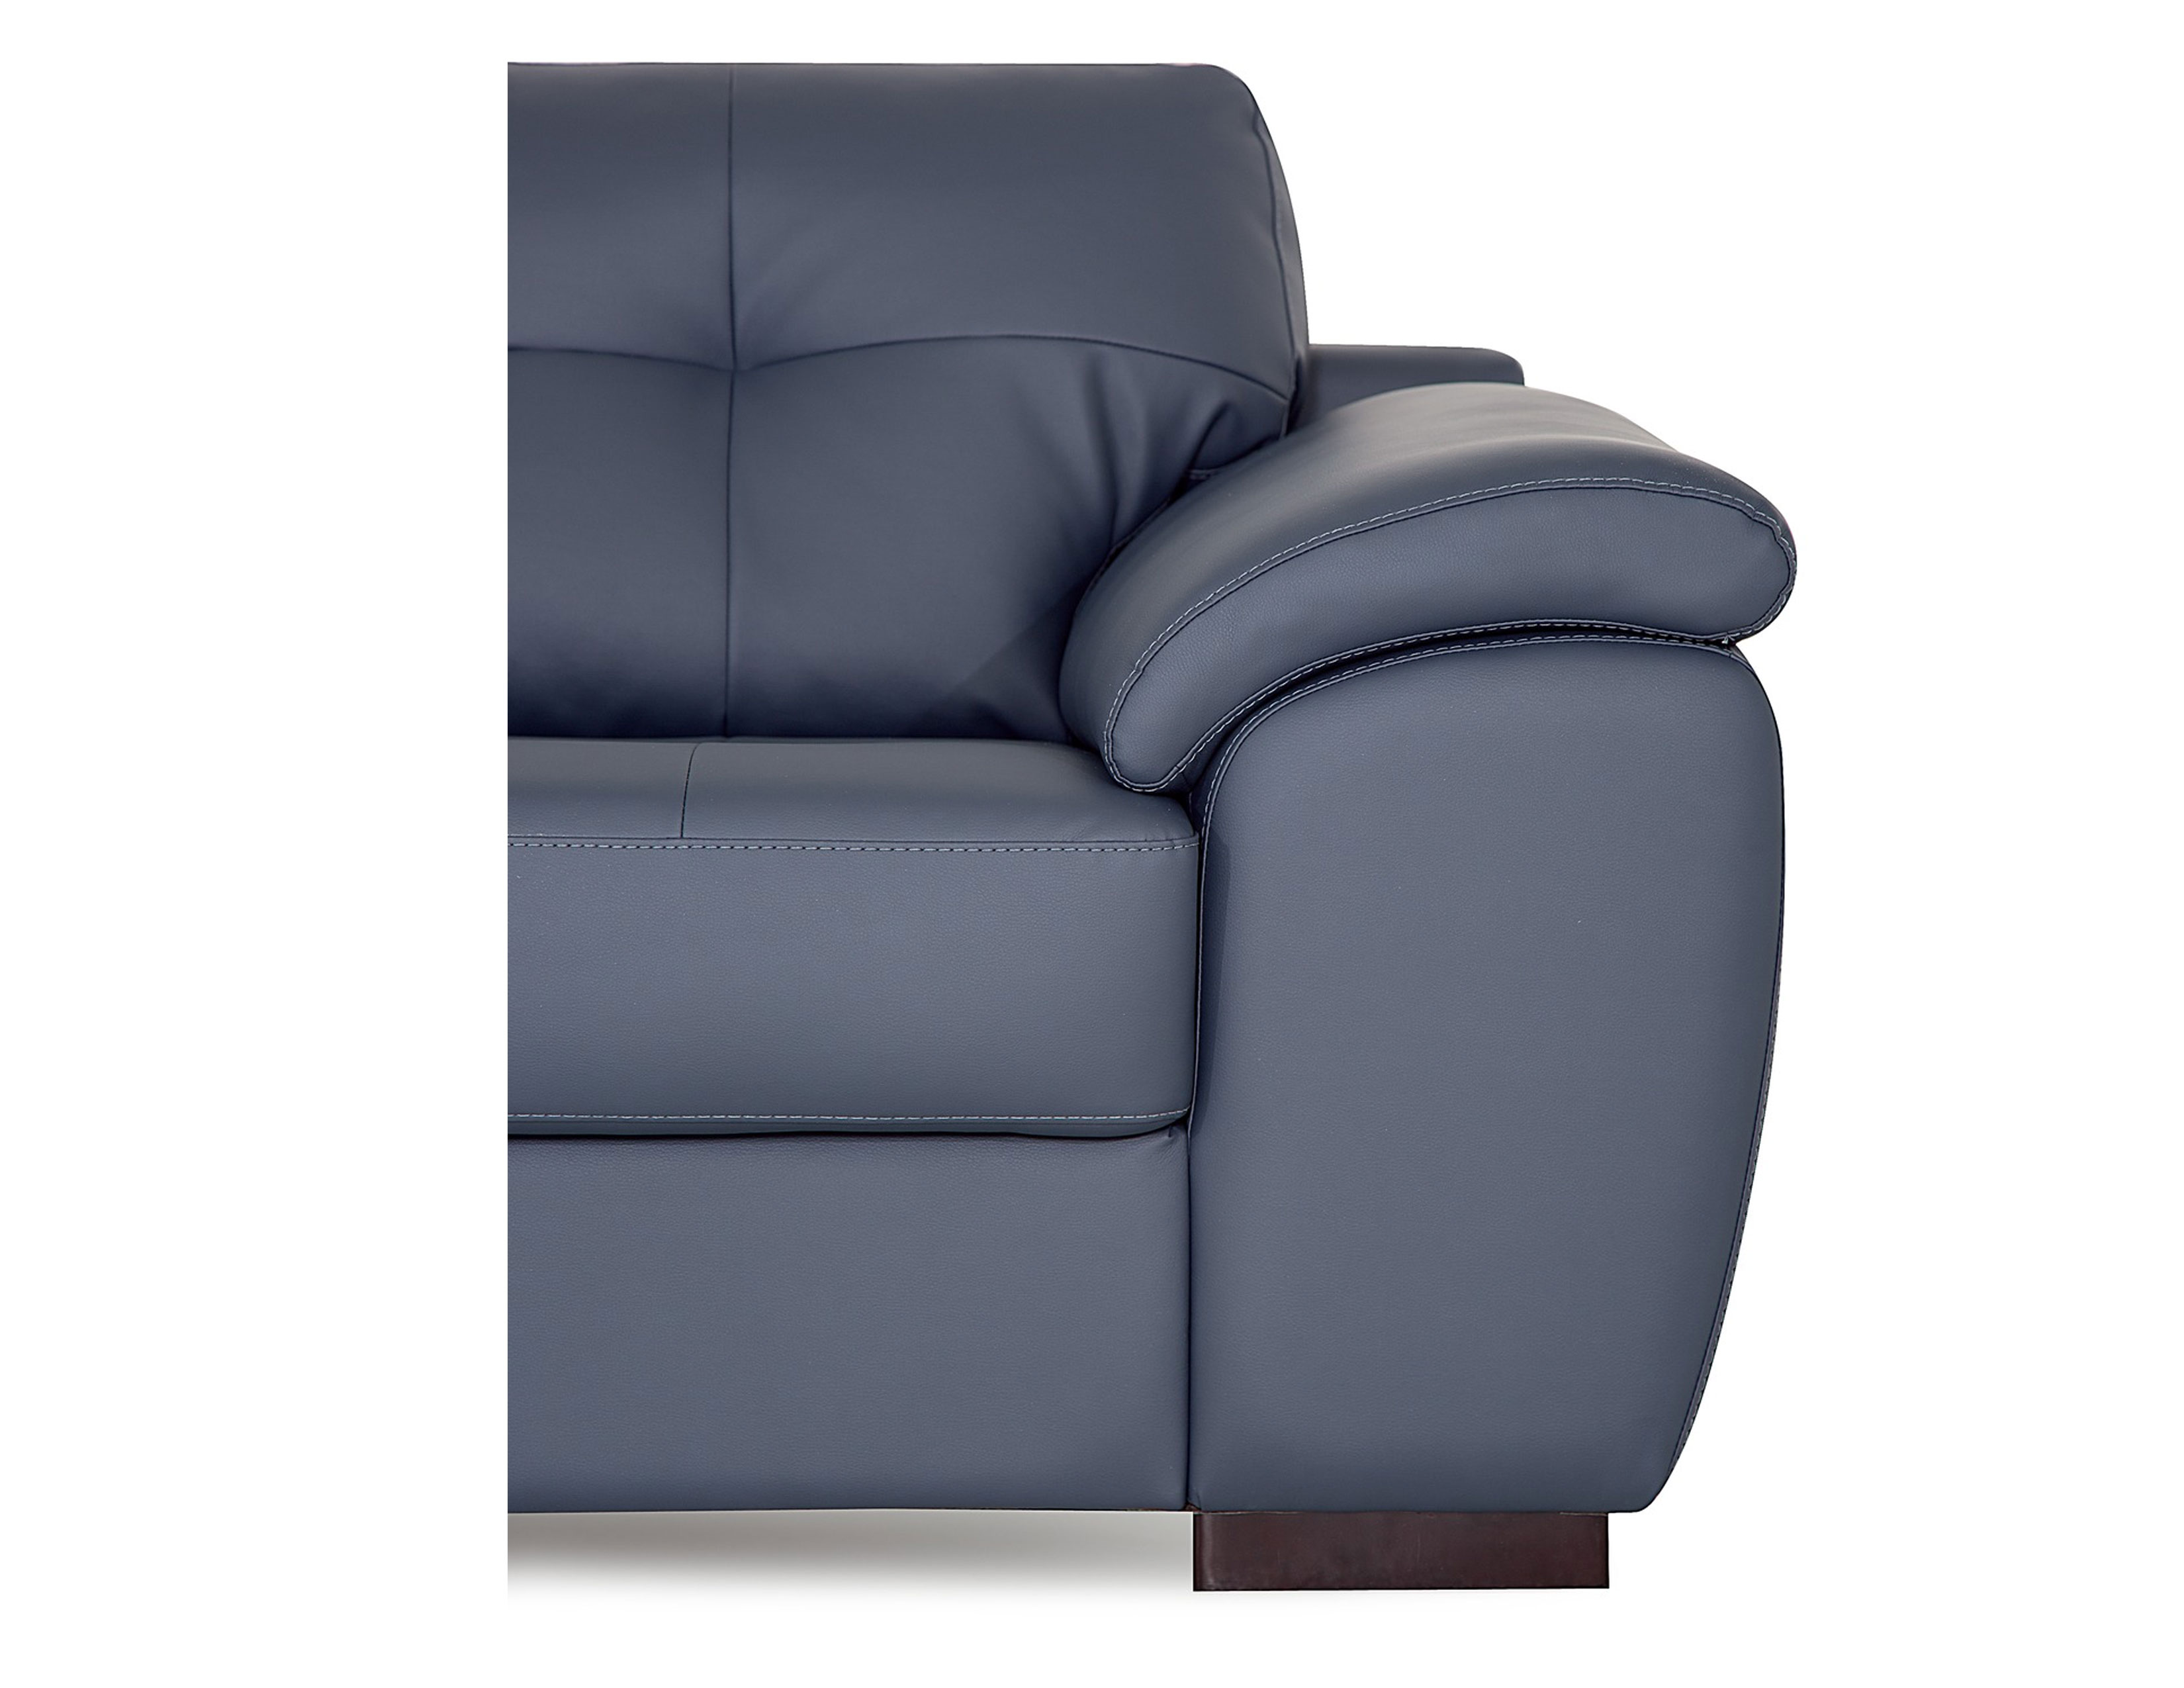 Groovy Long Beach 77627 70627 Sofa Collection 350 Sofas And Caraccident5 Cool Chair Designs And Ideas Caraccident5Info